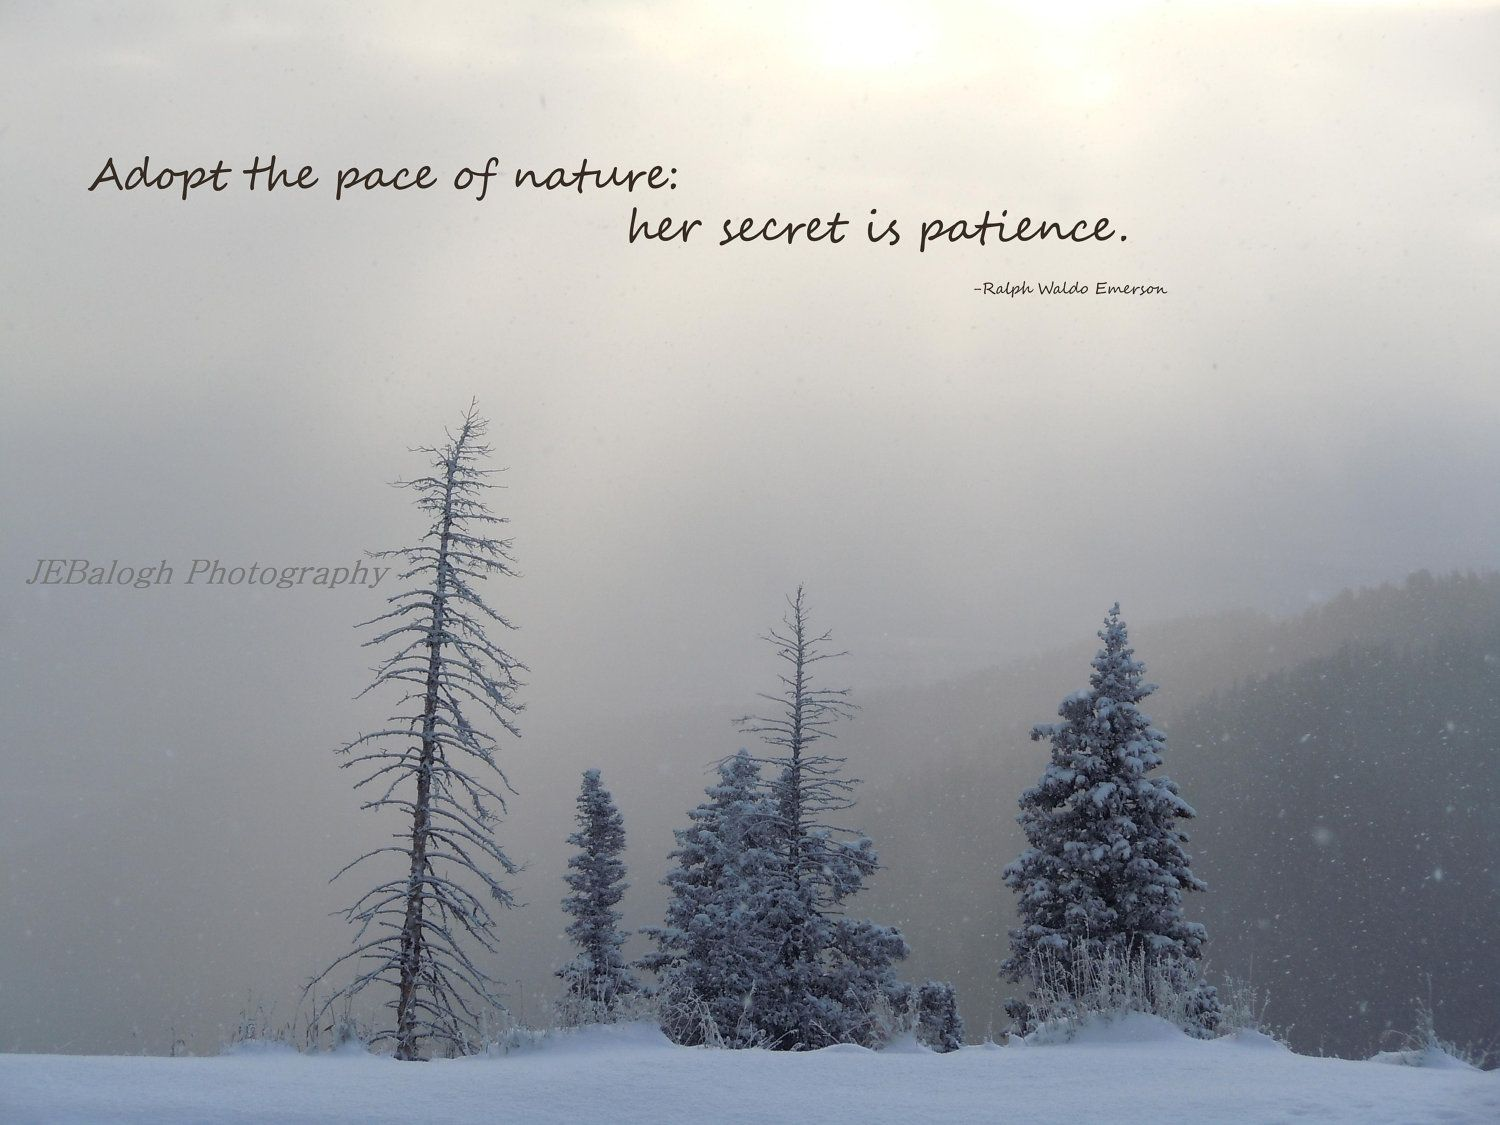 Scenic quotes daily inspirational quotations and sayings on - Nature Photography Inspirational Quotes Winter Wonderland Snowy Trees Mountains Emerson Adopt The Pace Of Nature Print